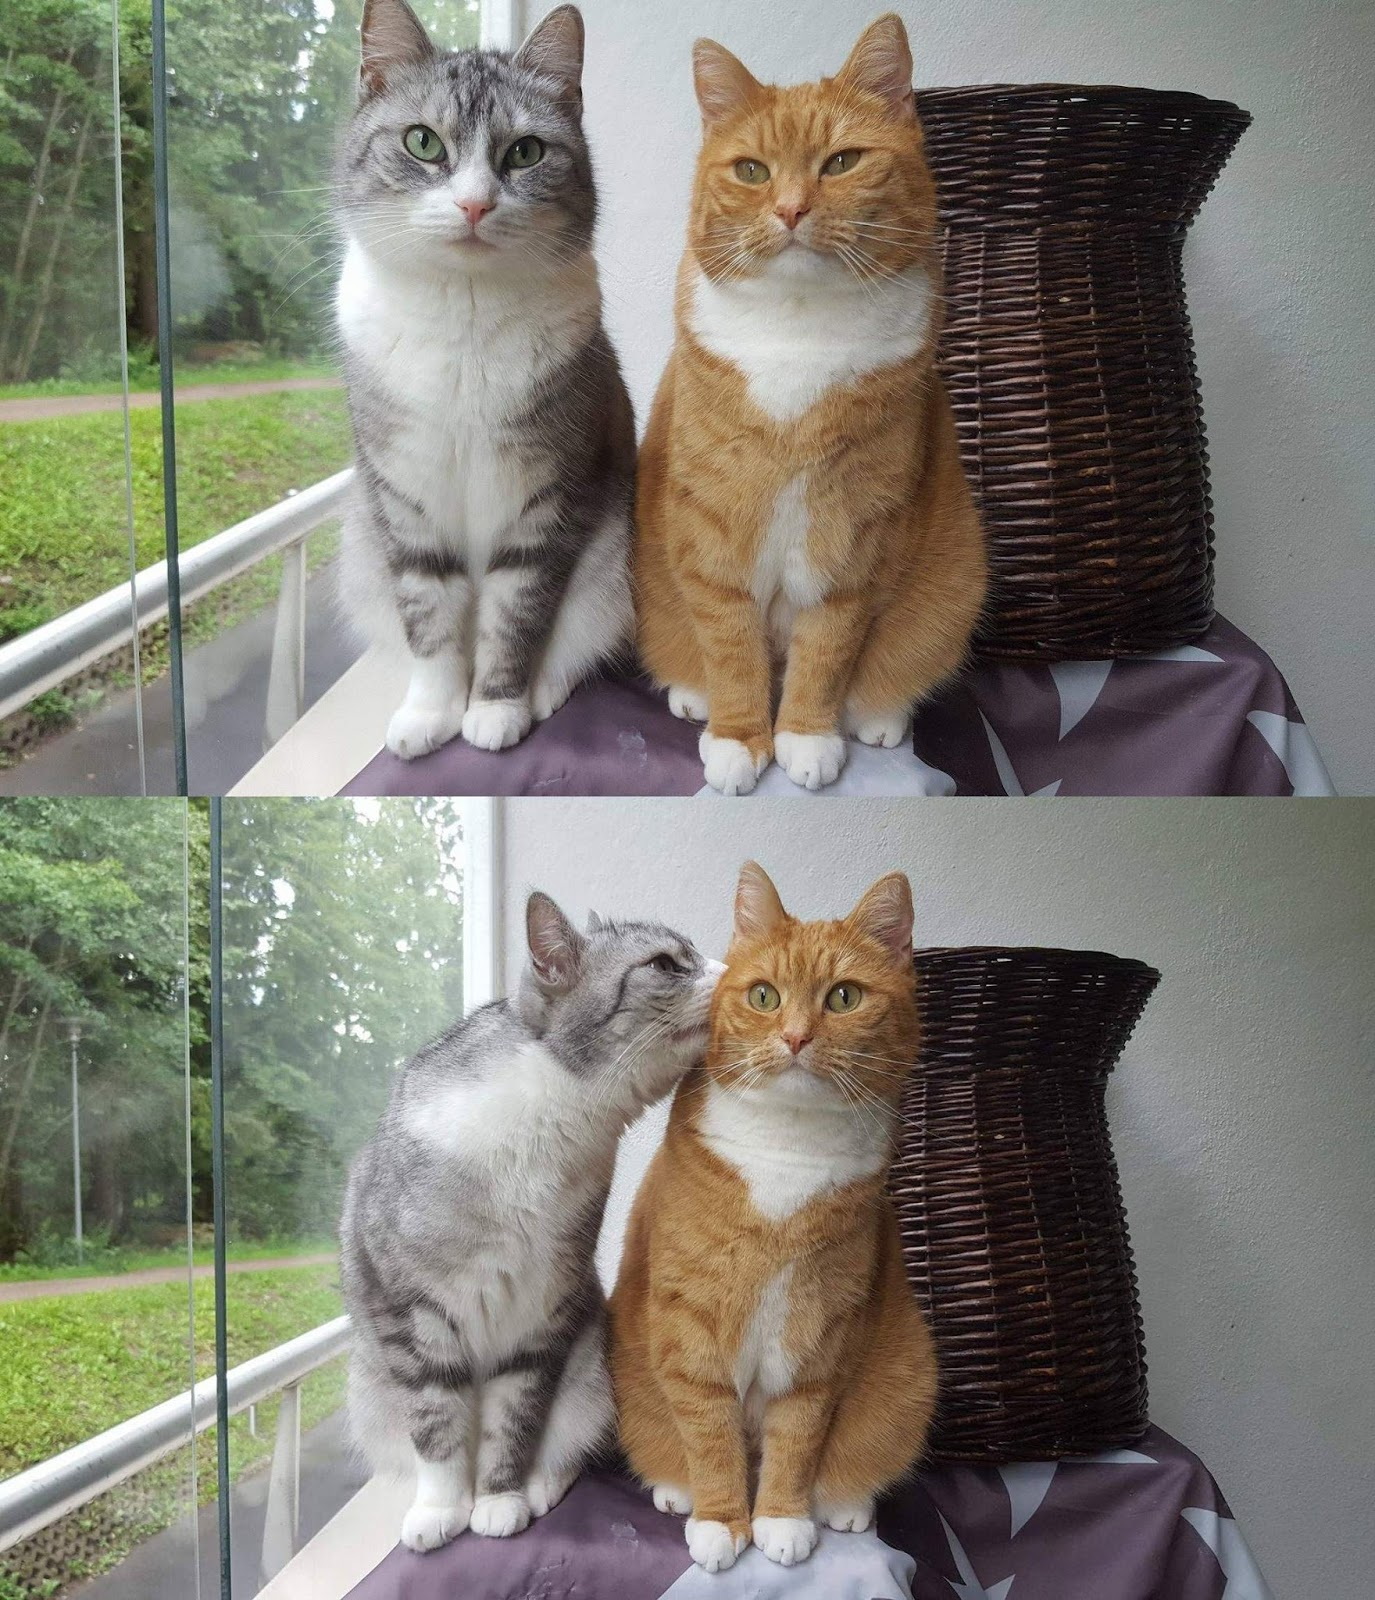 Funny cats - part 280, cute cat picture, funny cat image